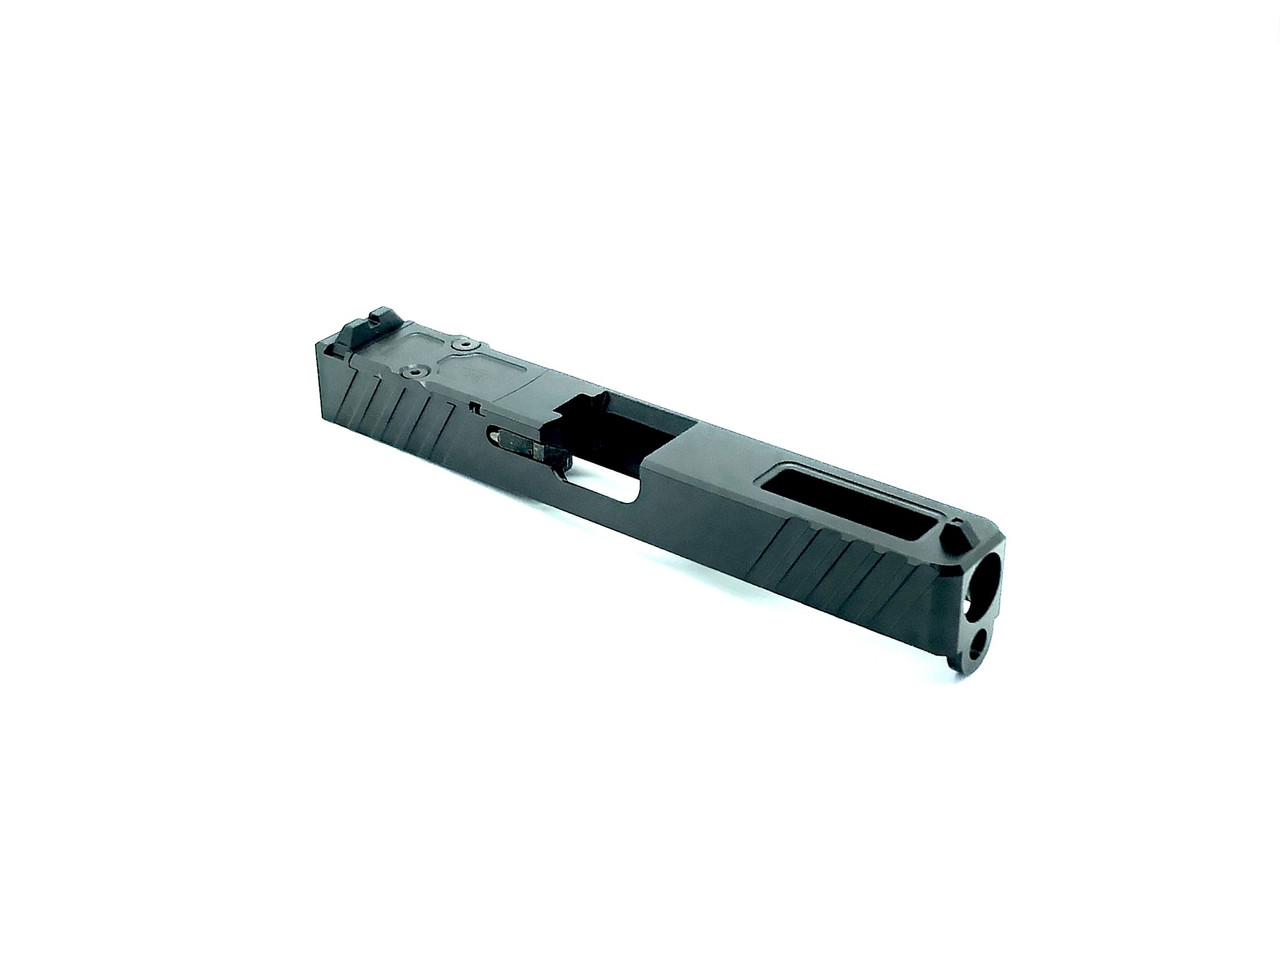 MDX Arms G22 with RMR Cut/Plate Stripped Slides Black